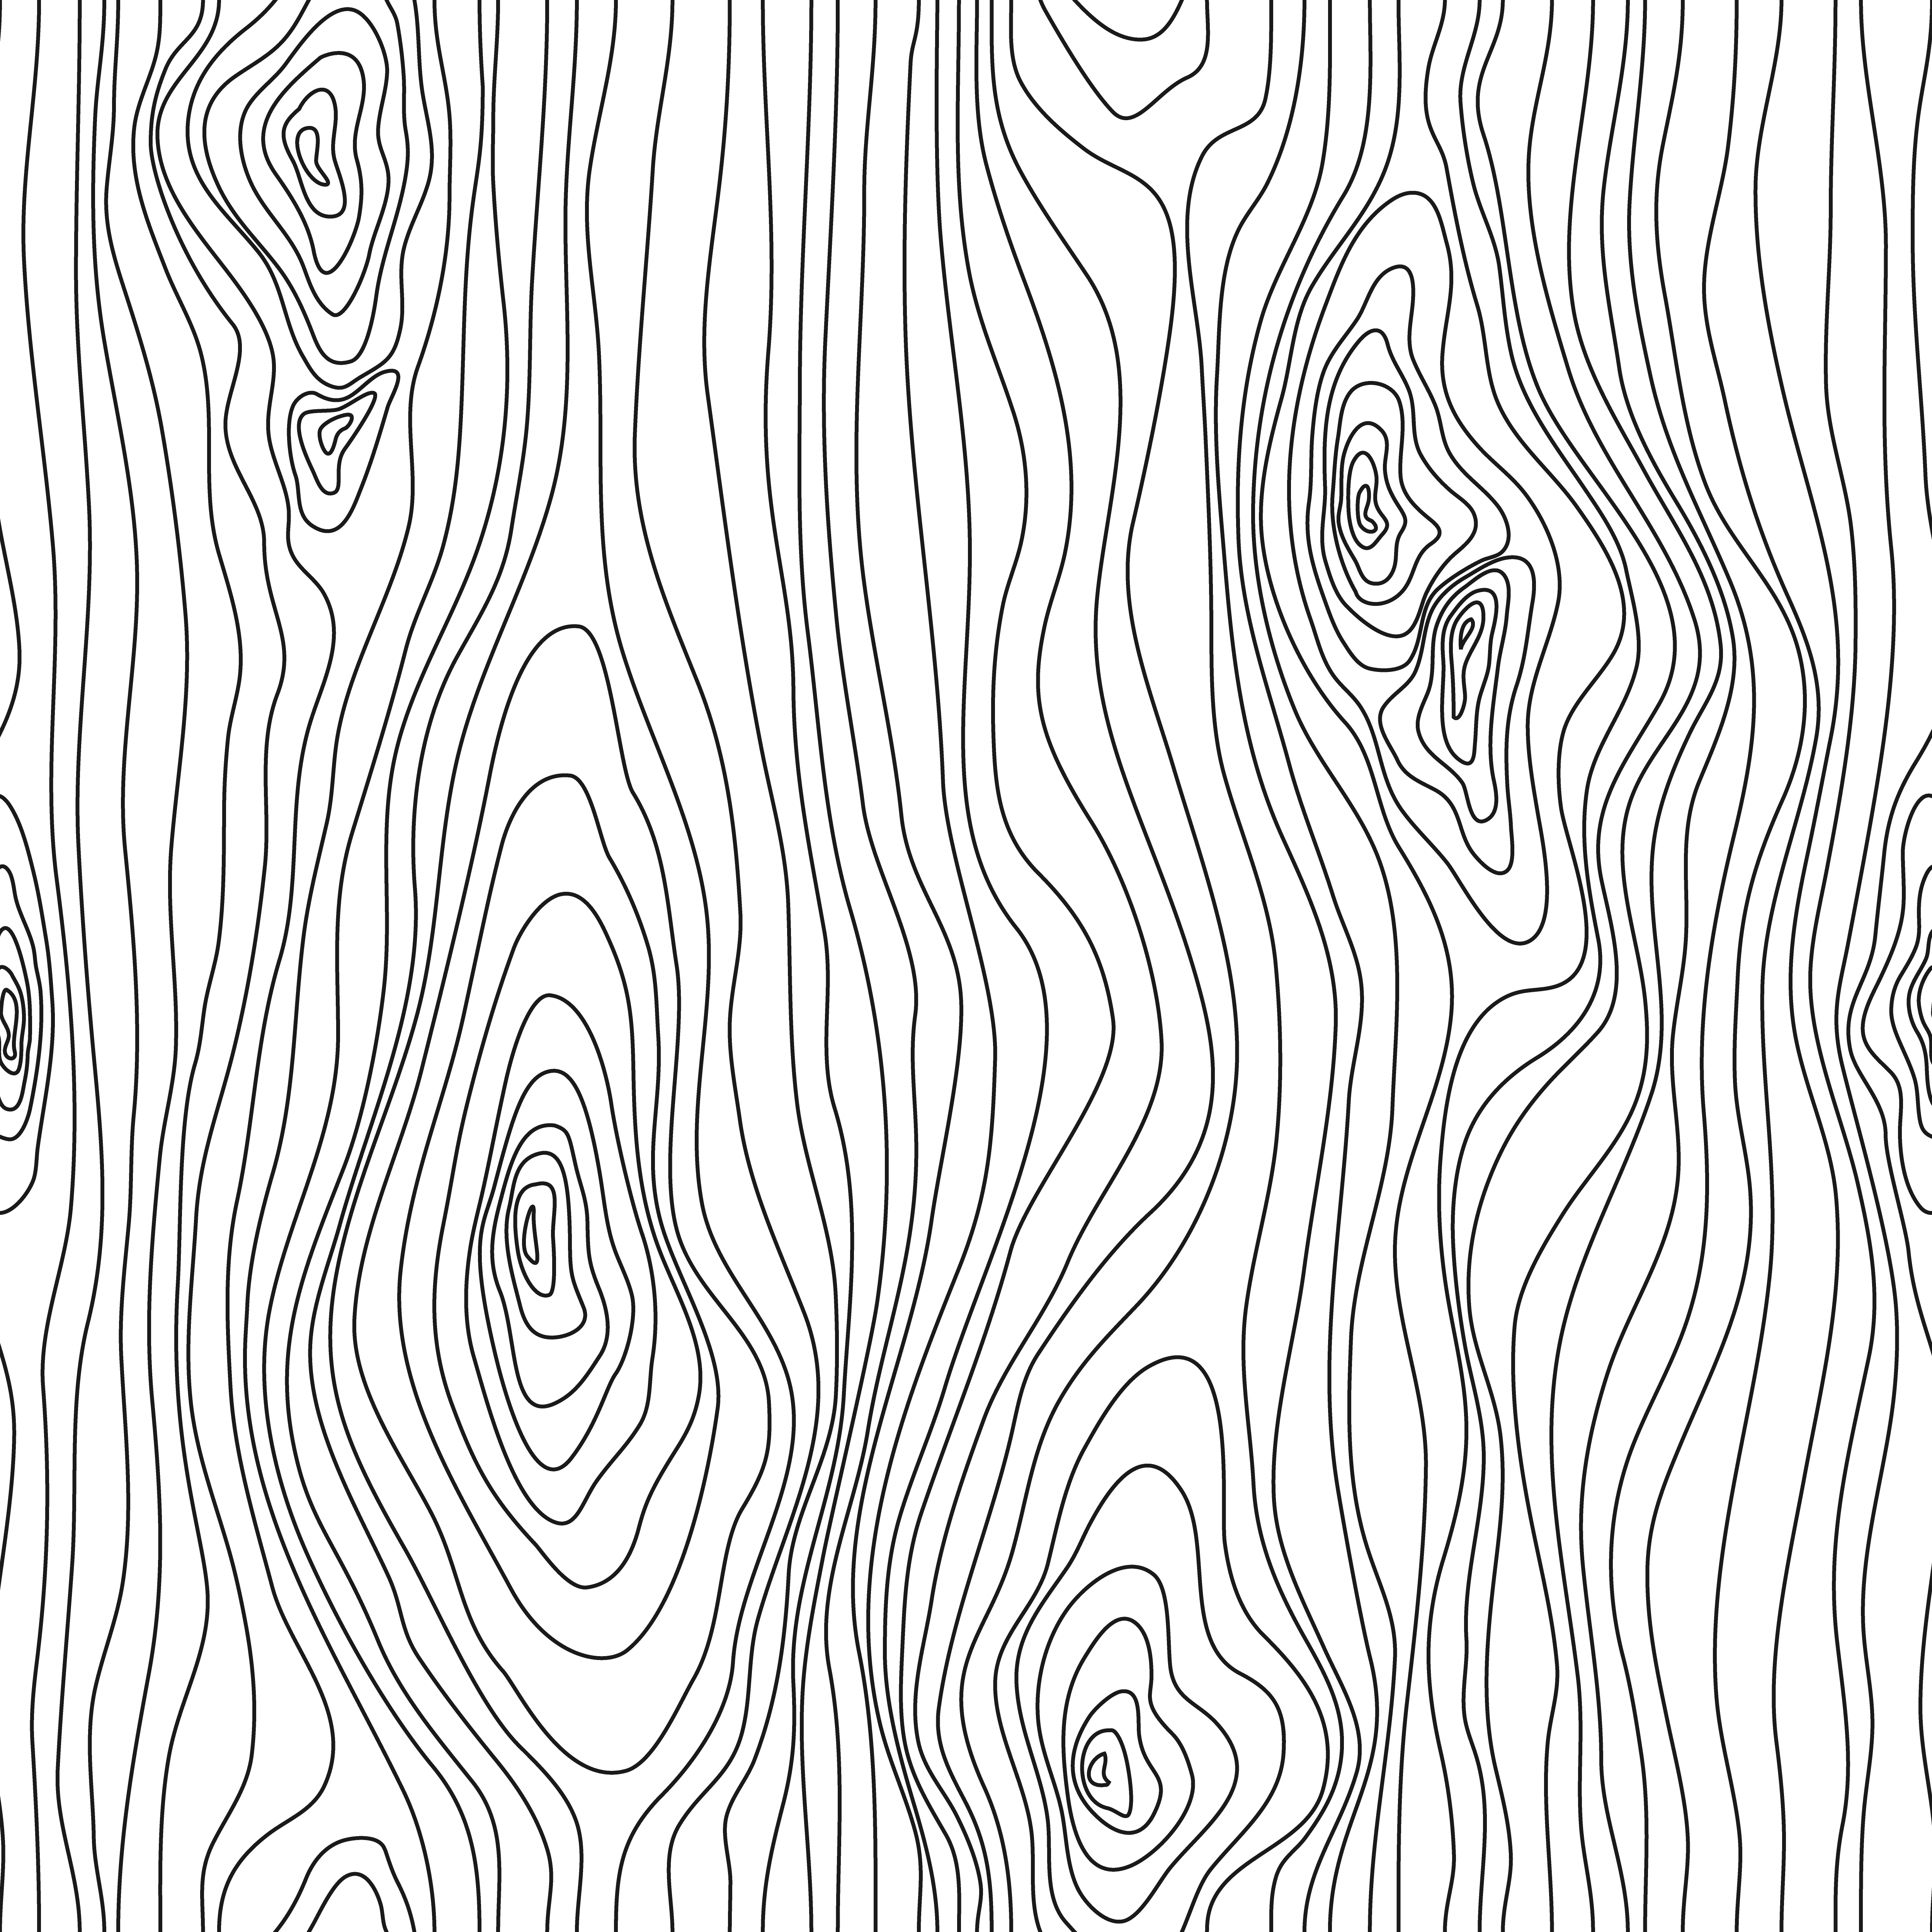 Wood Texture Seamless Sketch. Grain cover surface. Wooden fibers. Vector background